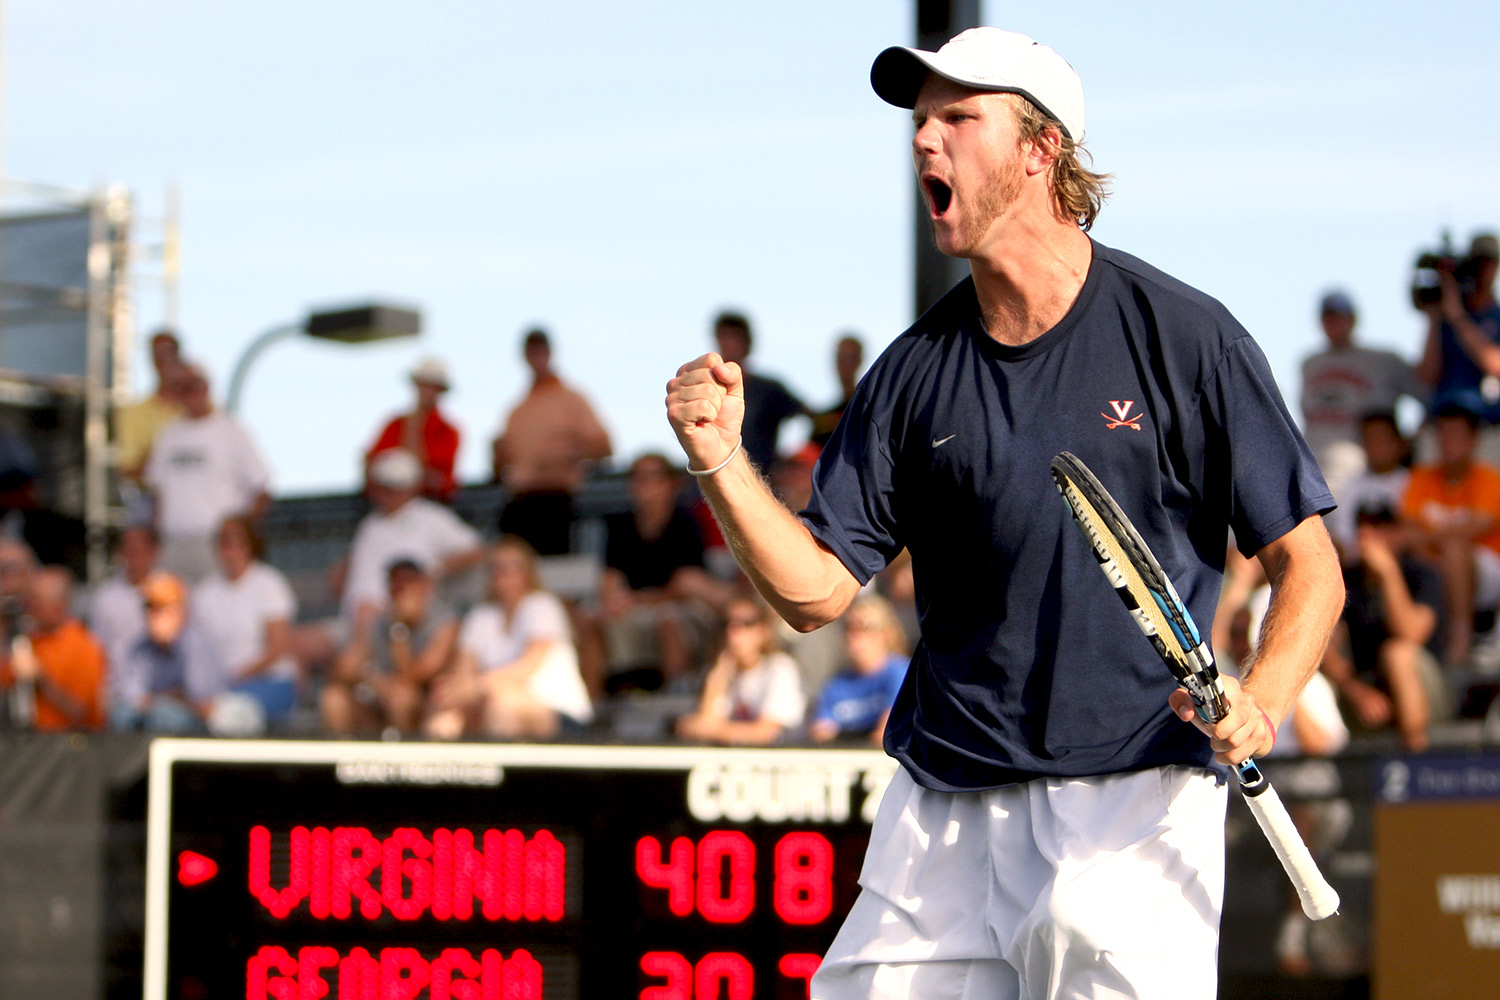 Since winning an NCAA title in doubles while at UVA, Dom Inglot has participated on Great Britain's championship Davis Cup team. He begins play at Wimbledon this week. (Photo credit: Matt Riley and UVA Athletics)